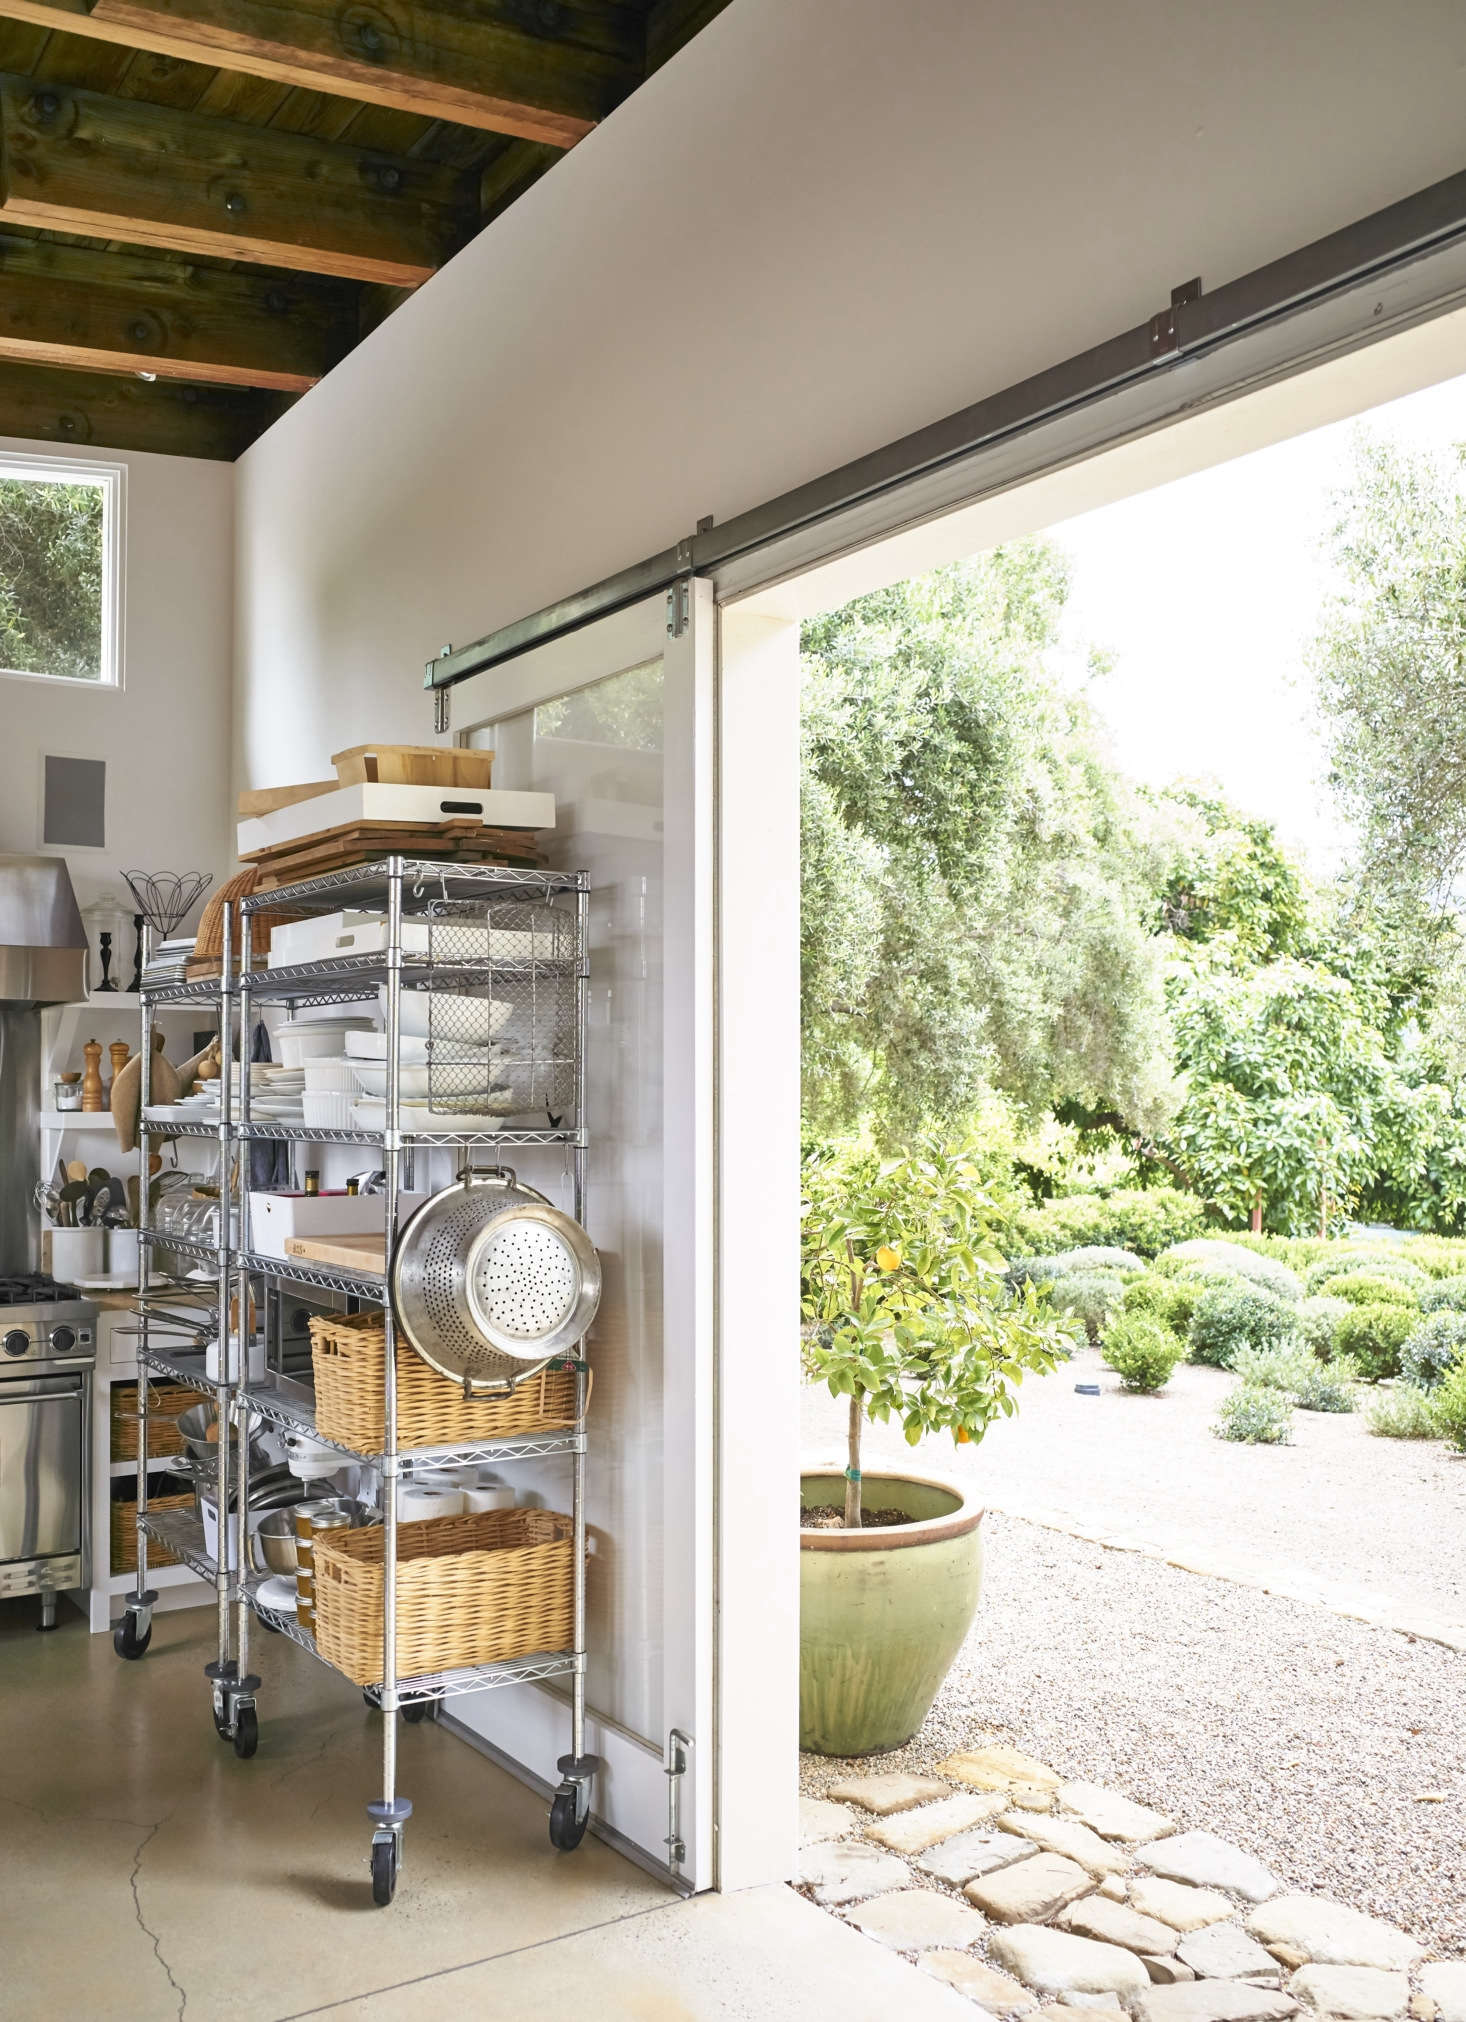 Restaurant-style metal shelves on casters add significant storage for props, bakeware, and utensils, but can be rolled away to clear the room for a shot. The kitchen opens directly onto Pearson&#8